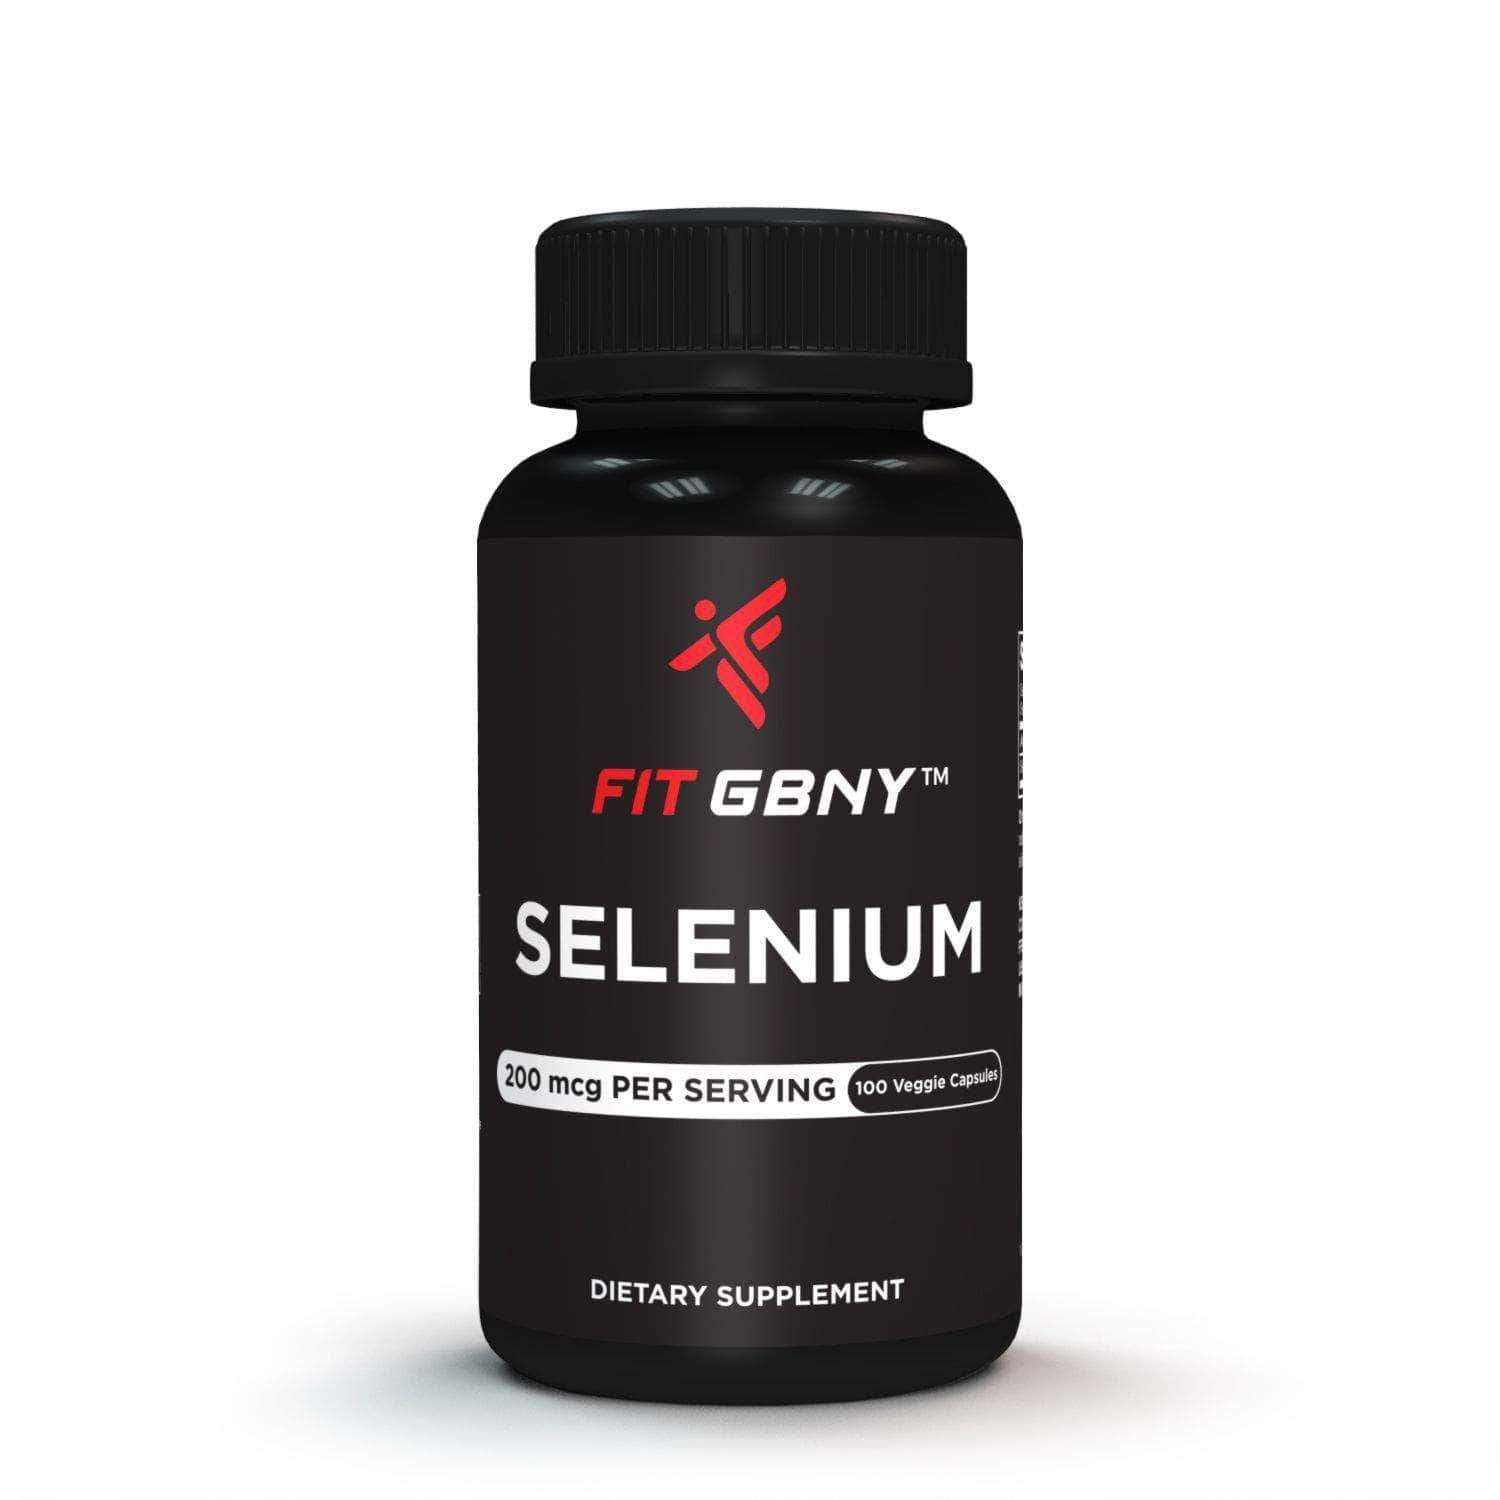 FIT GBNY Supplements Fit GBNY Selenium 200 mcg (100 Veg-Capsules) FGBS200